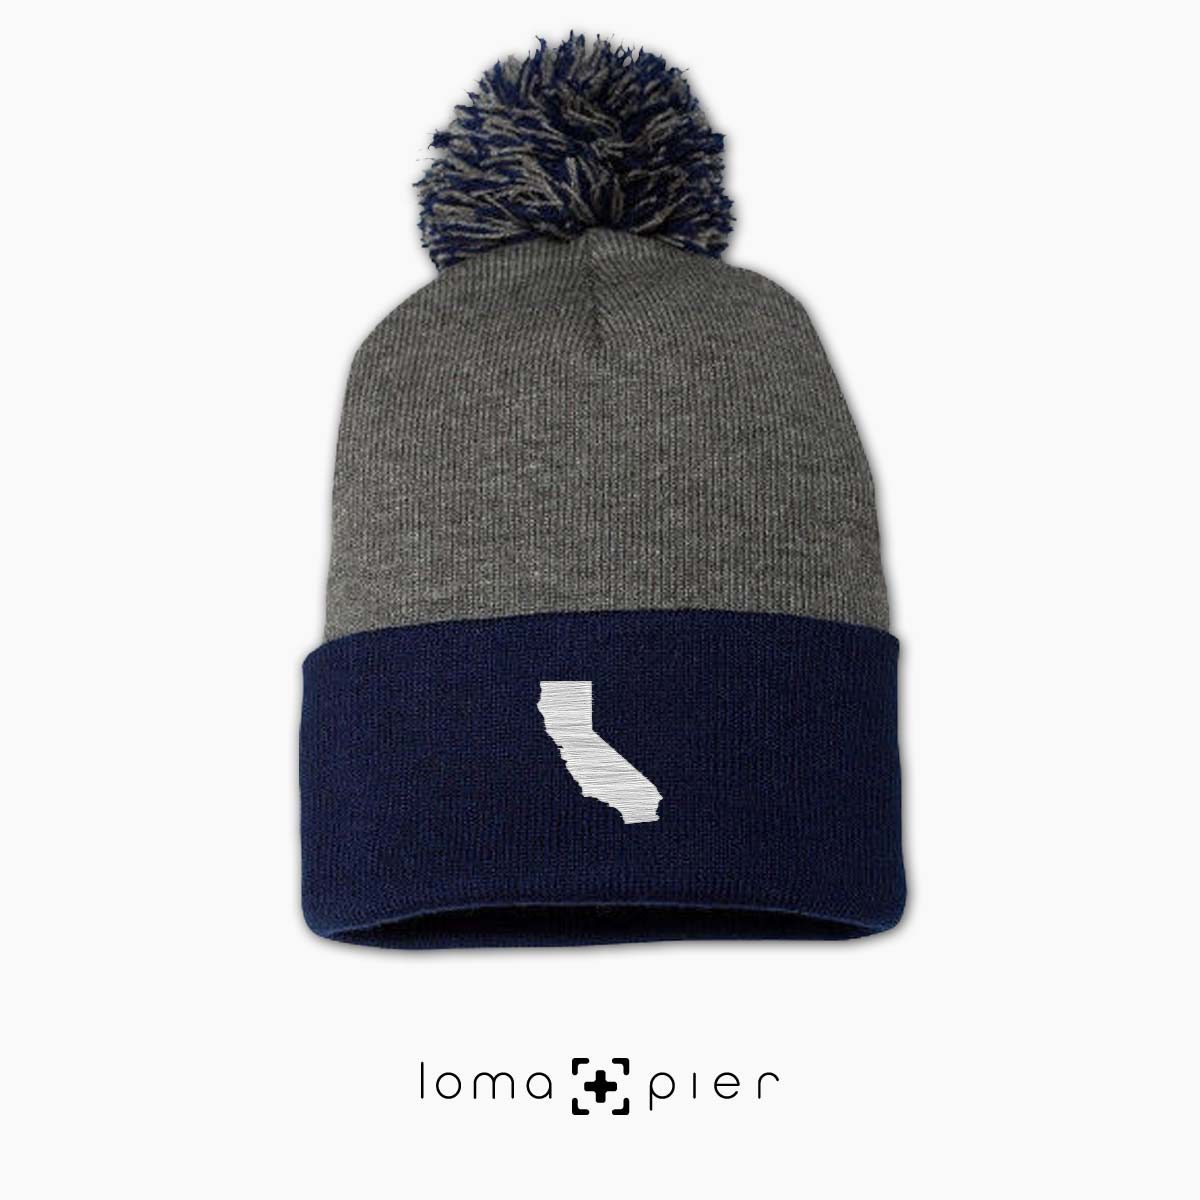 CALIFORNIA silhouette icon embroidered on a grey navy pom pom beanie by loma+pier hat store